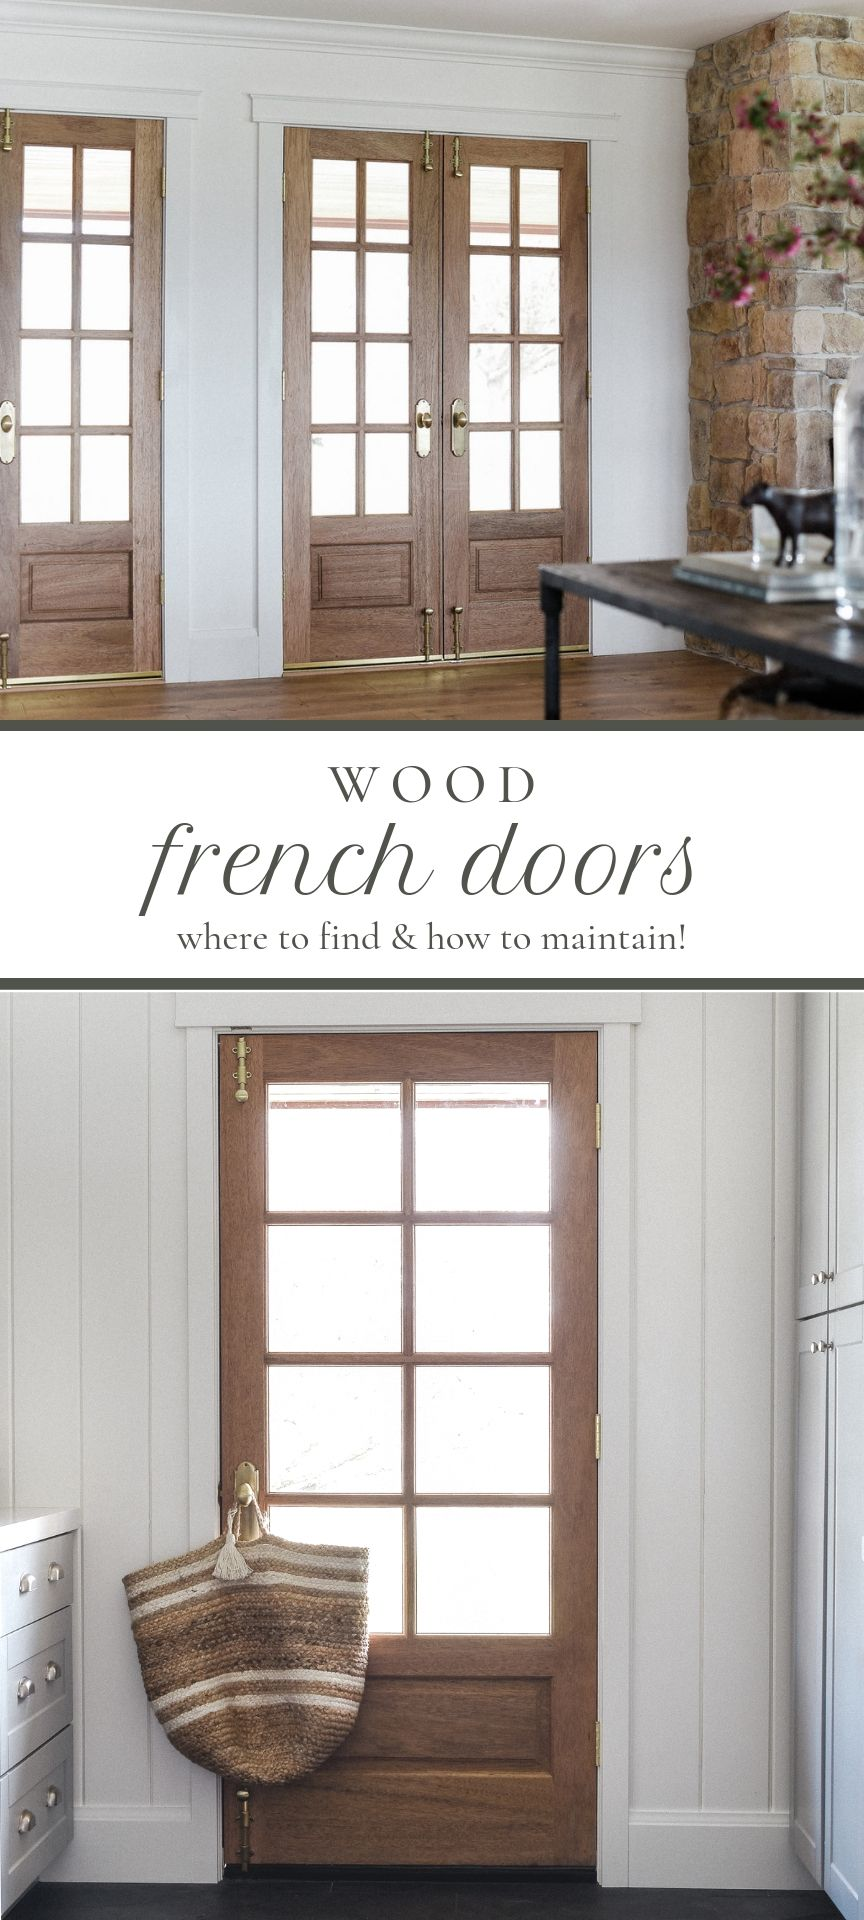 Wood French doors with white trim in modern farmhouse remodel | #boxwoodavenue #wooddoors #frenchdoors #farmhousedesign #modernfarmhouse